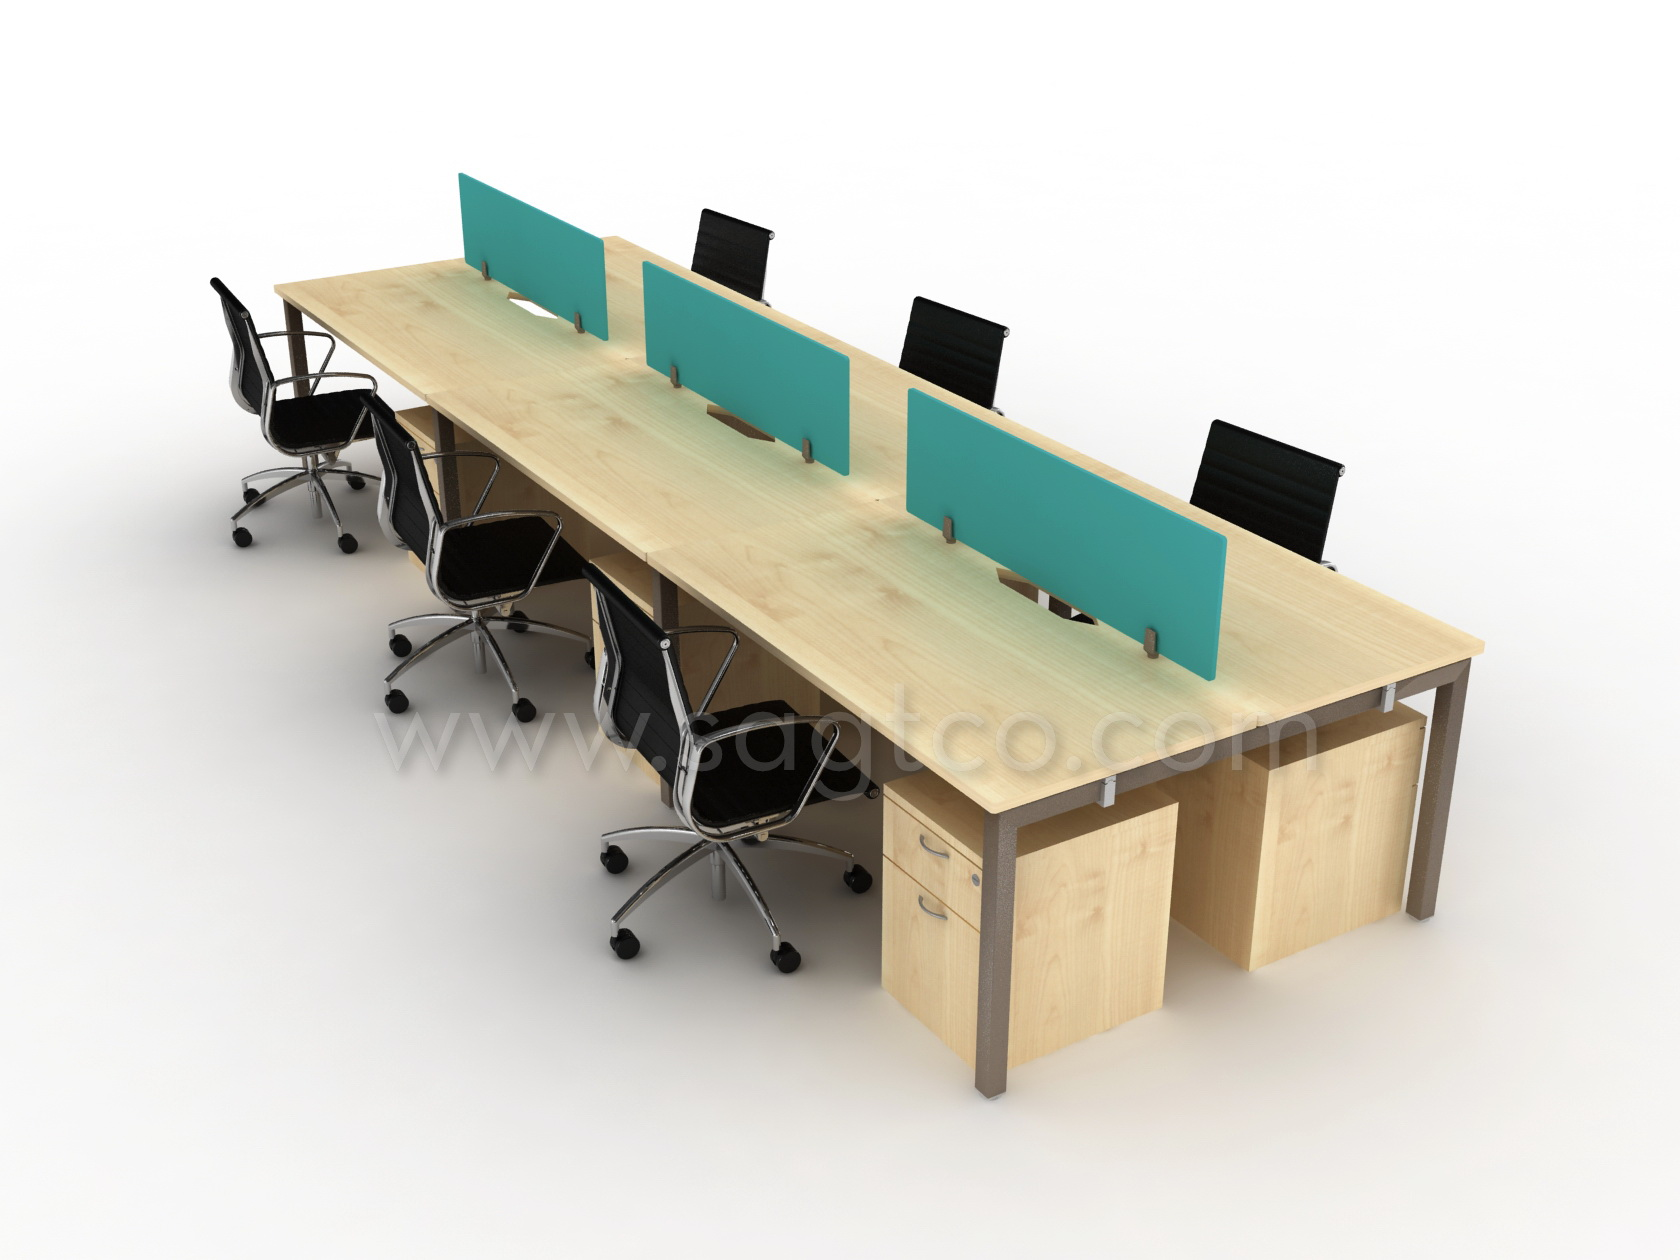 office workstations office partitions office furniture dubai abu rh sagtco com office workstations furniture design office desk furniture